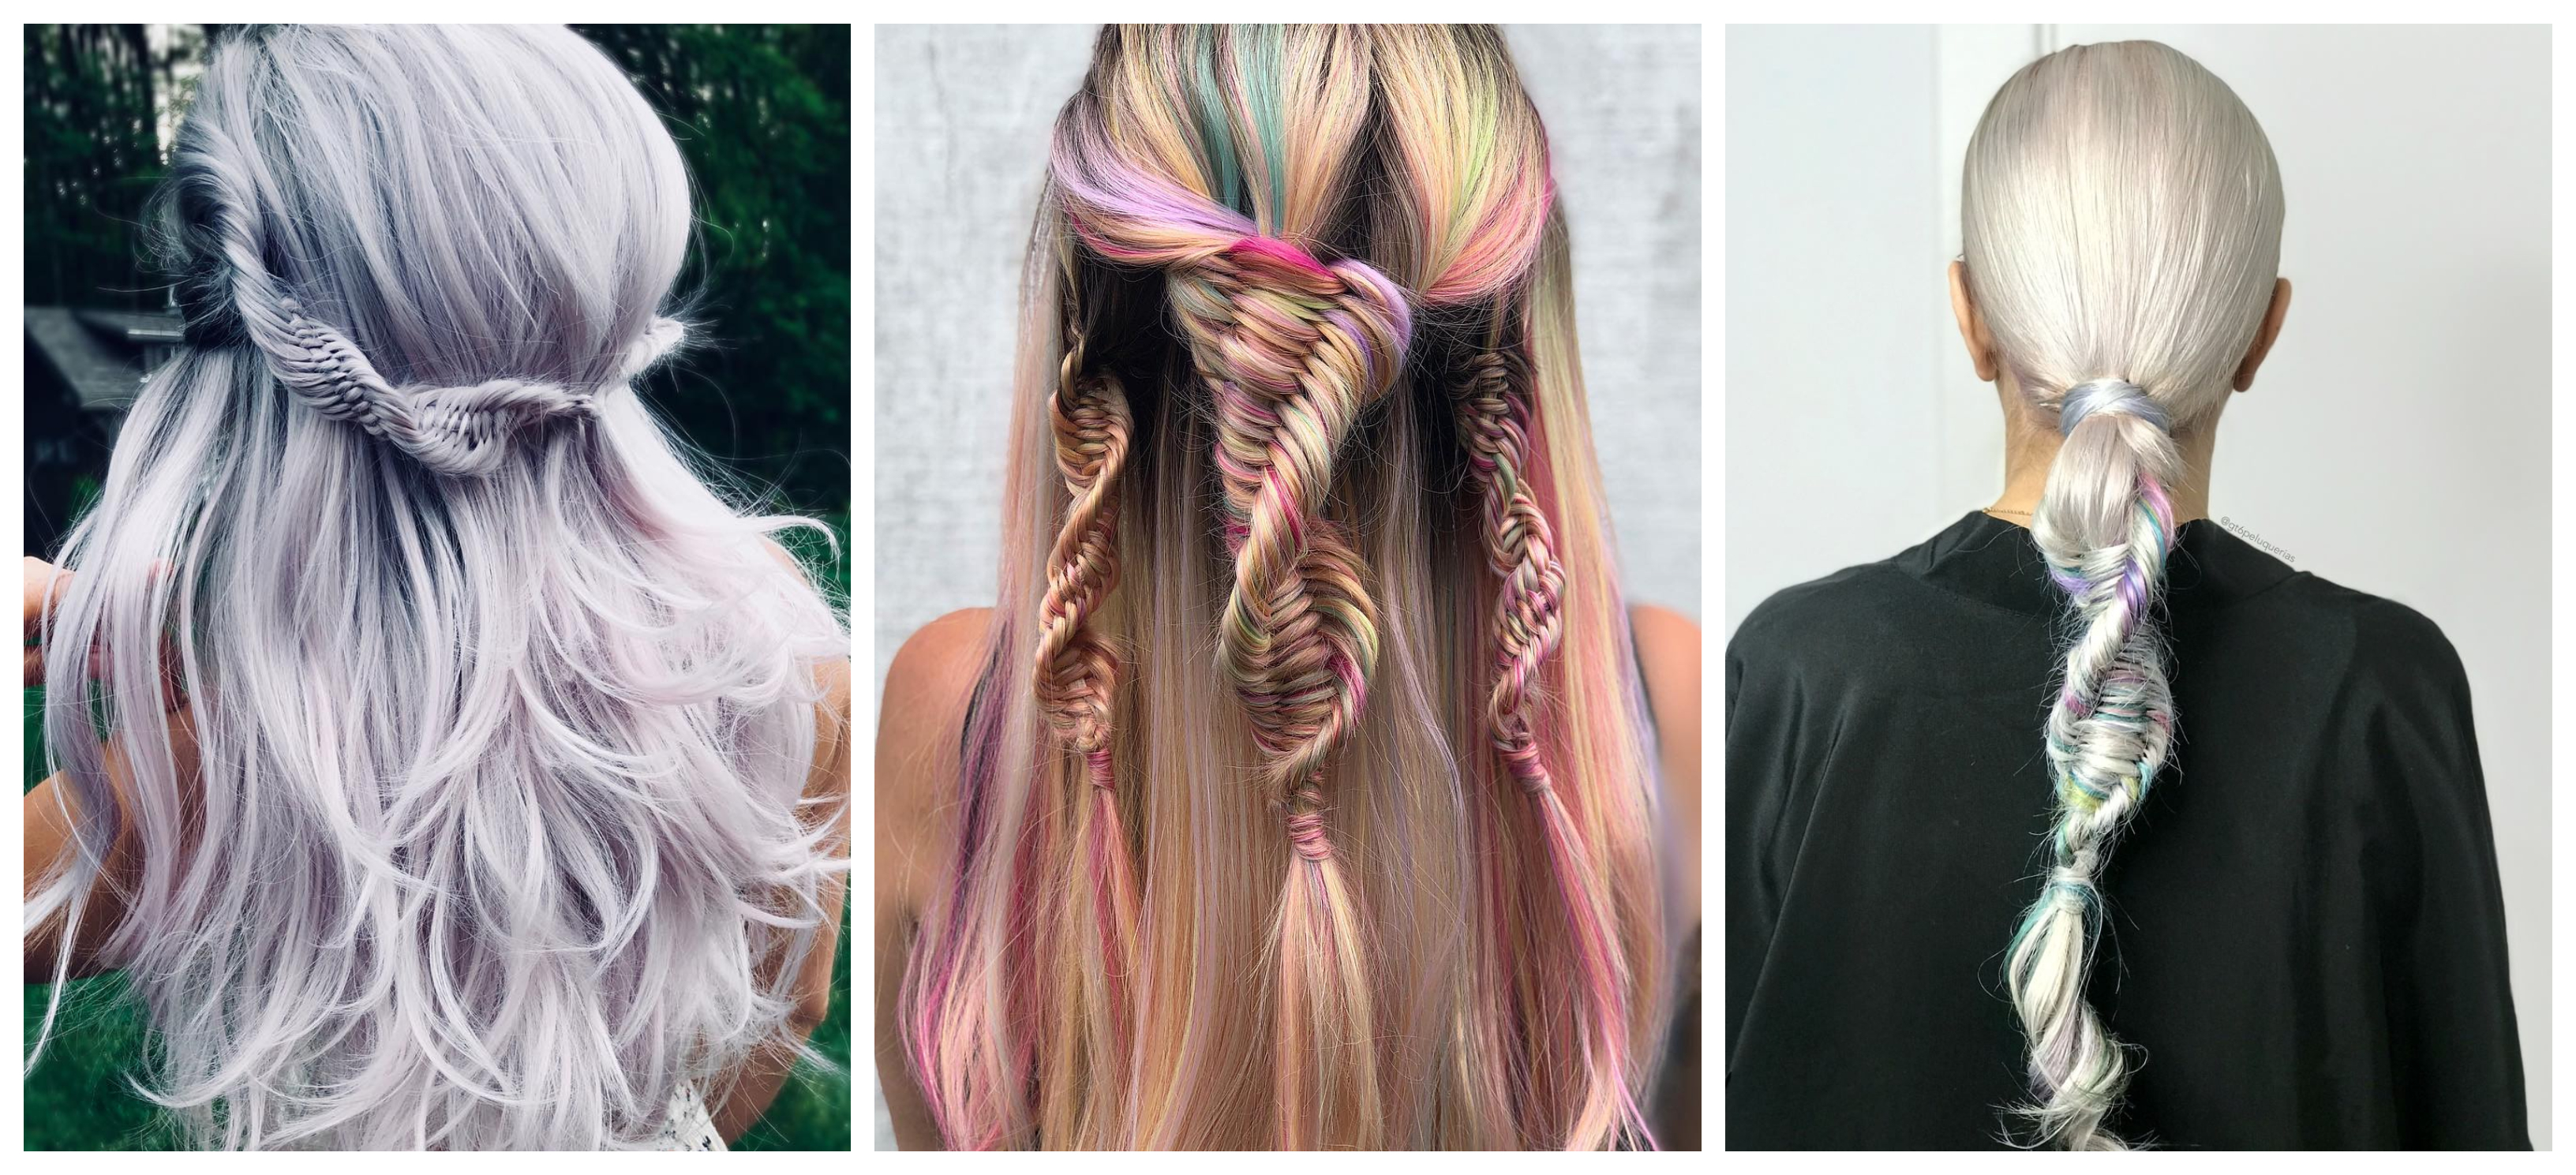 DNA-Braids-Hair-Trend